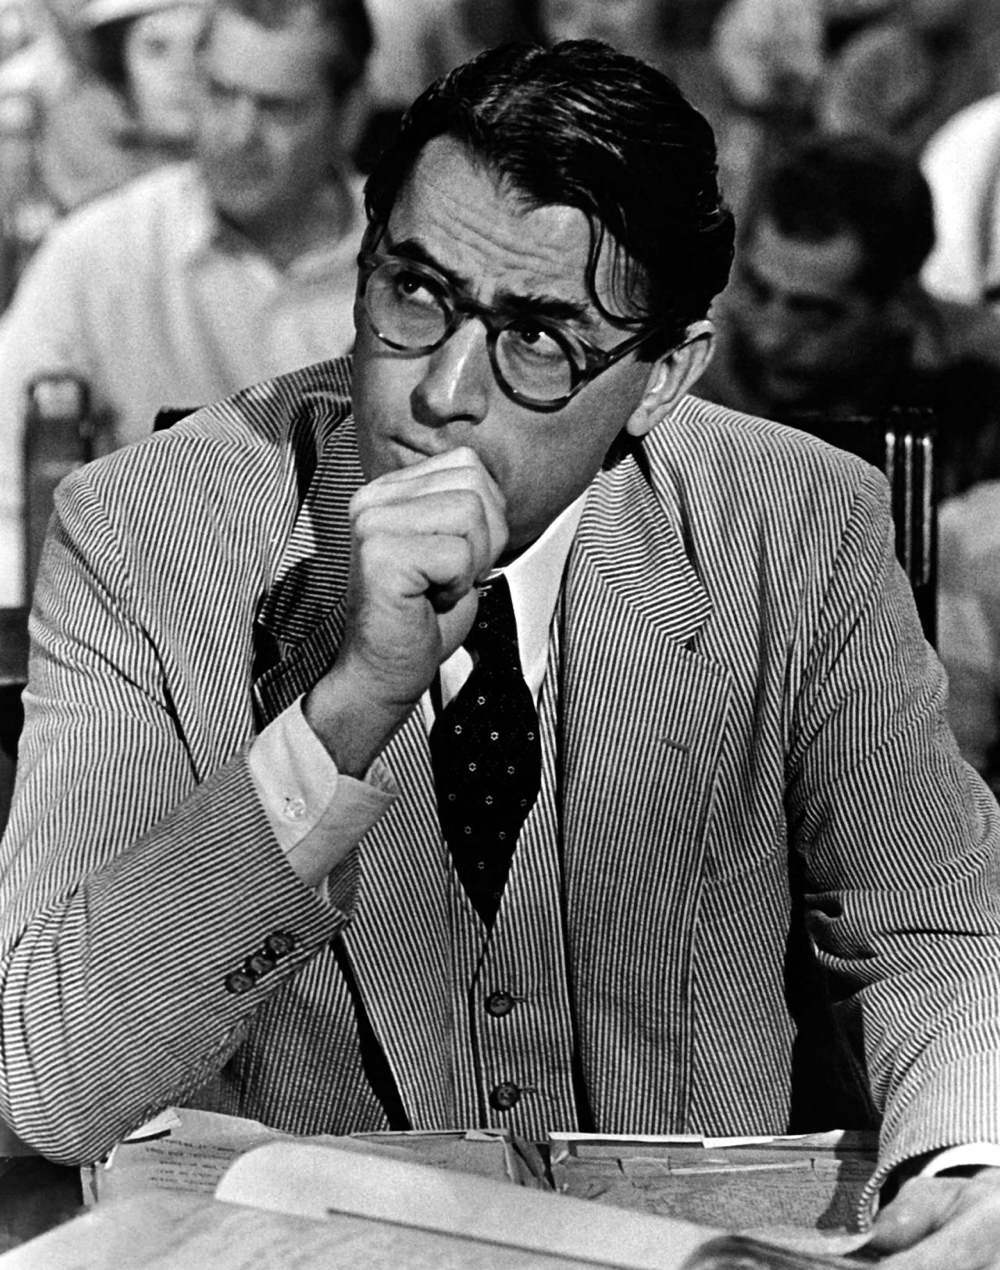 Gregory Peck as Atticus Finch in a seersucker suit